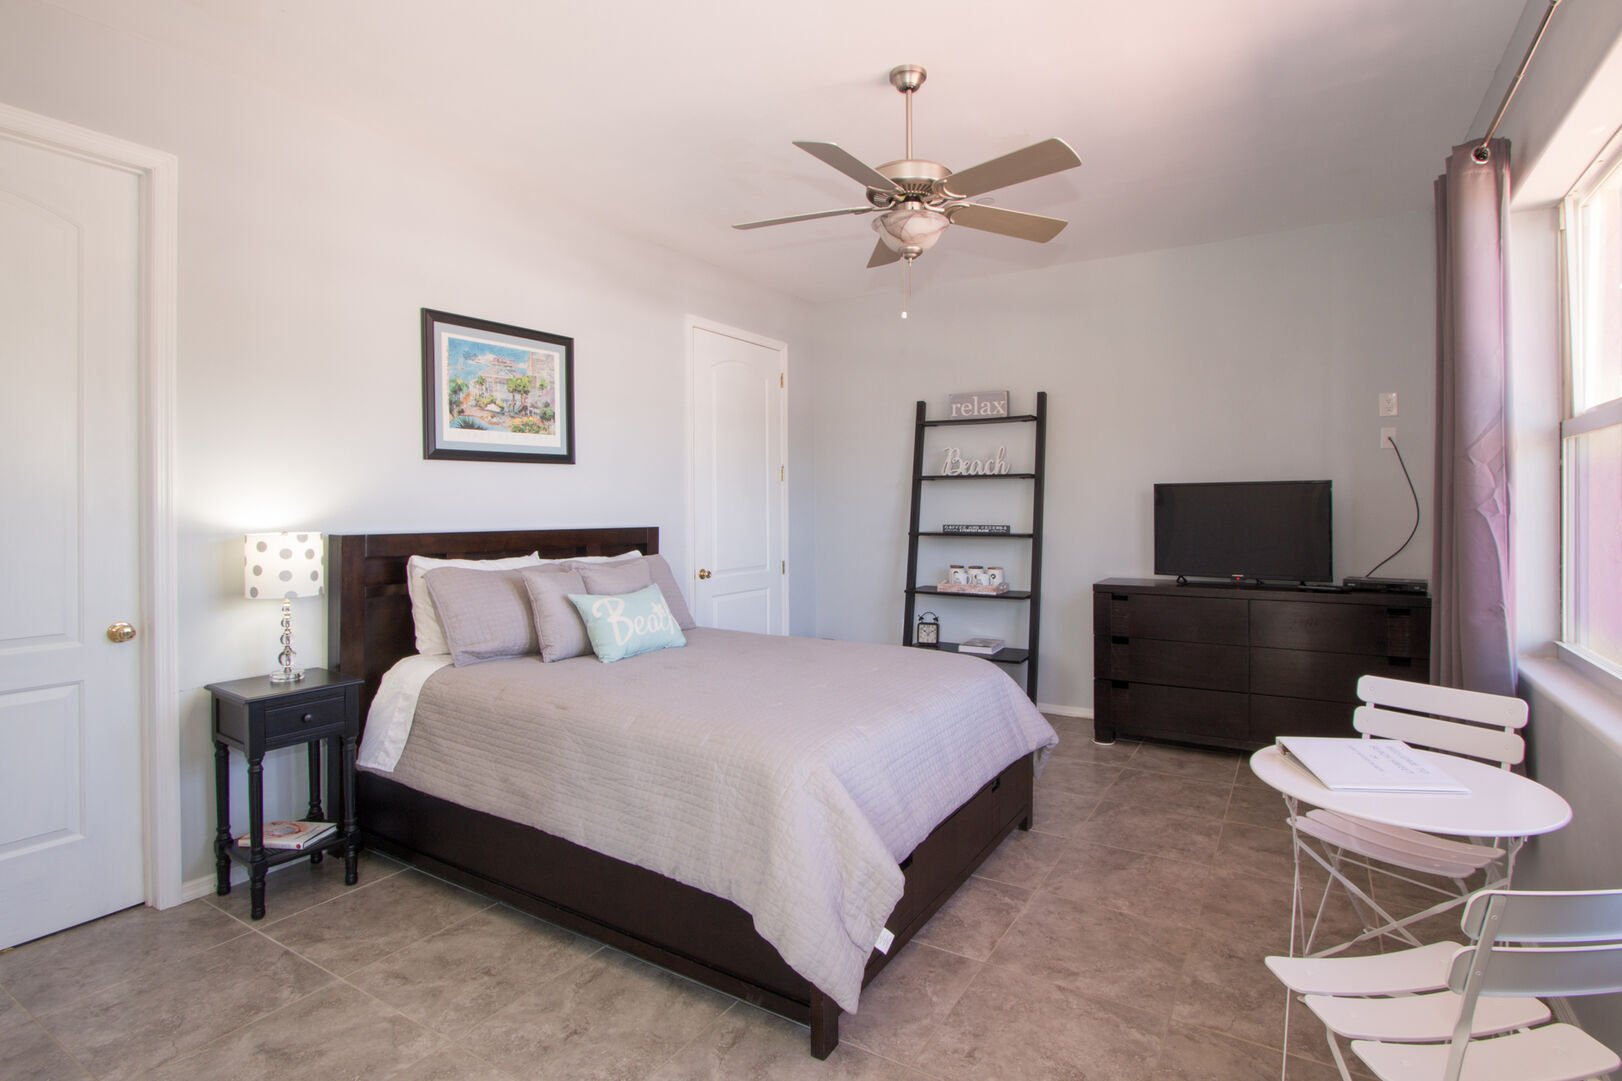 Guest bedroom with full bed in our vacation home in Fort Myers Beach